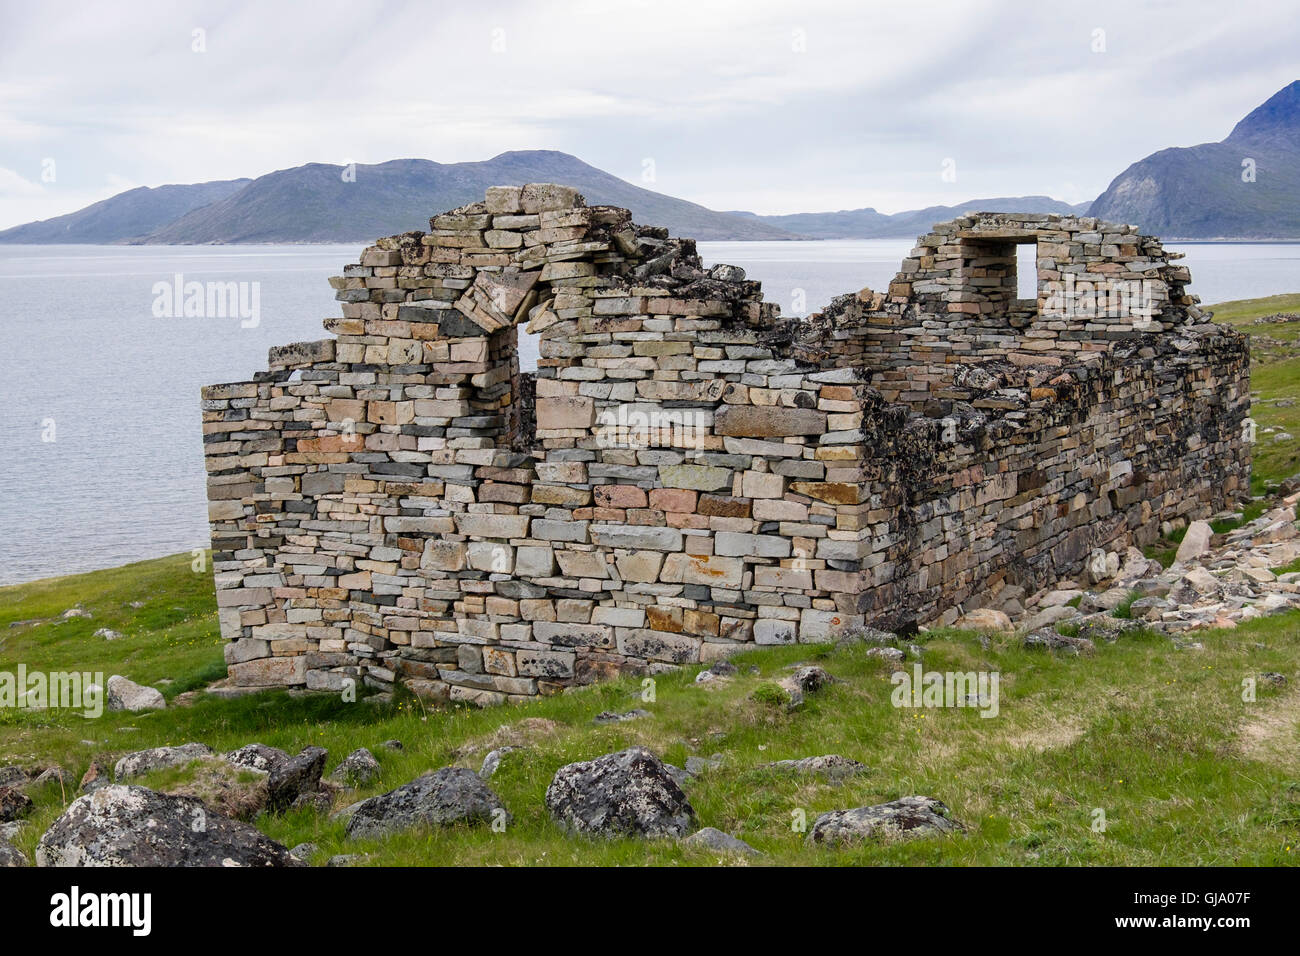 Hvalsey Church ruin built by Norse settlers in 12th century was first Christian church the in country. Qaqortoq - Stock Image